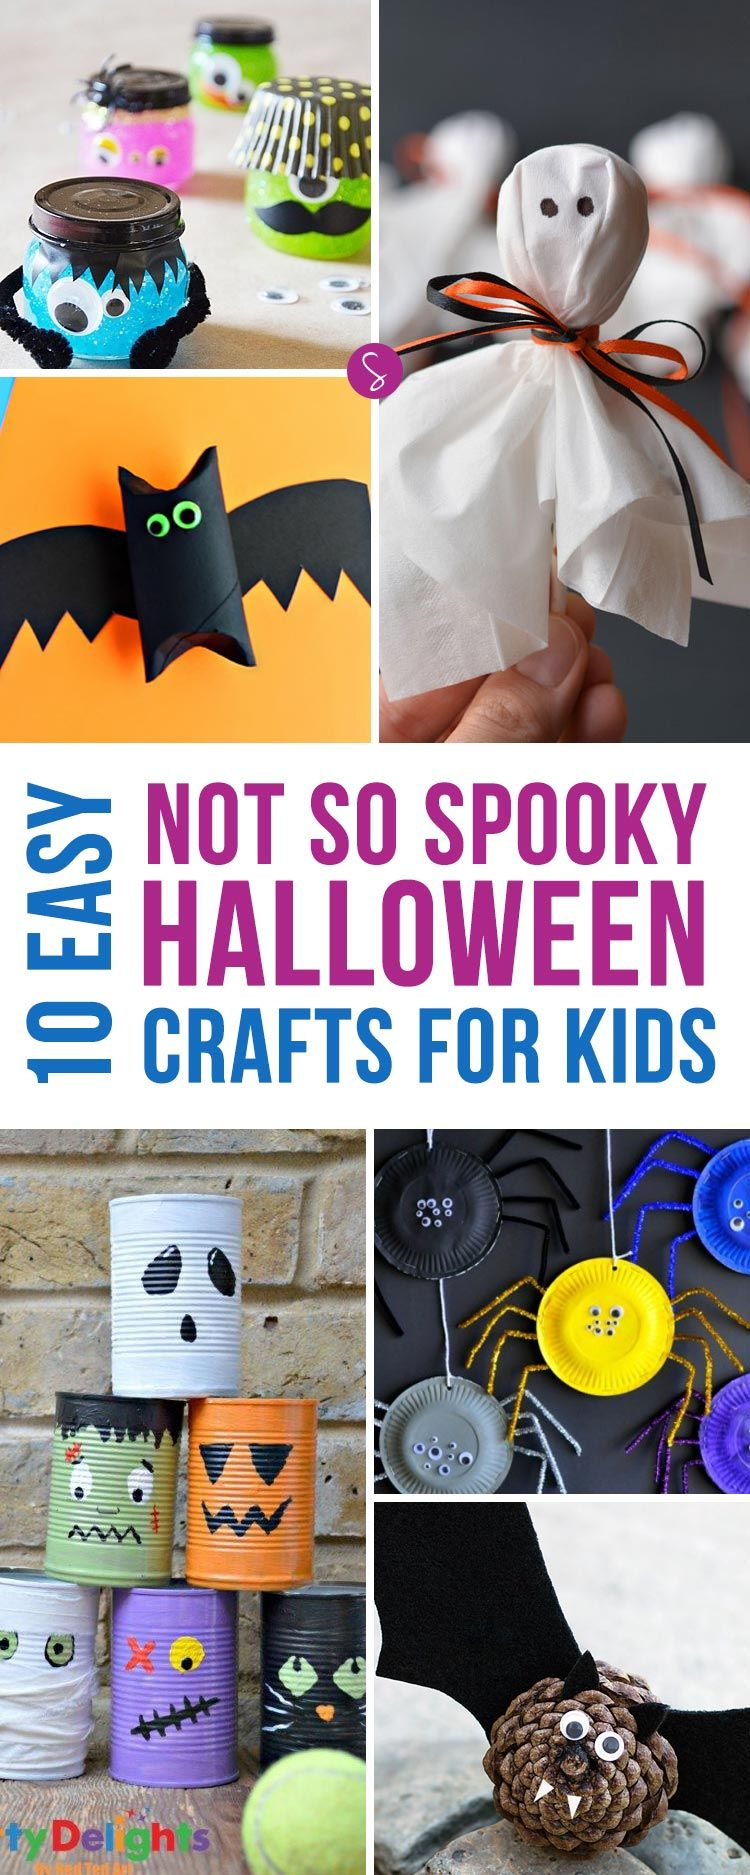 17+ Crafts for halloween party info